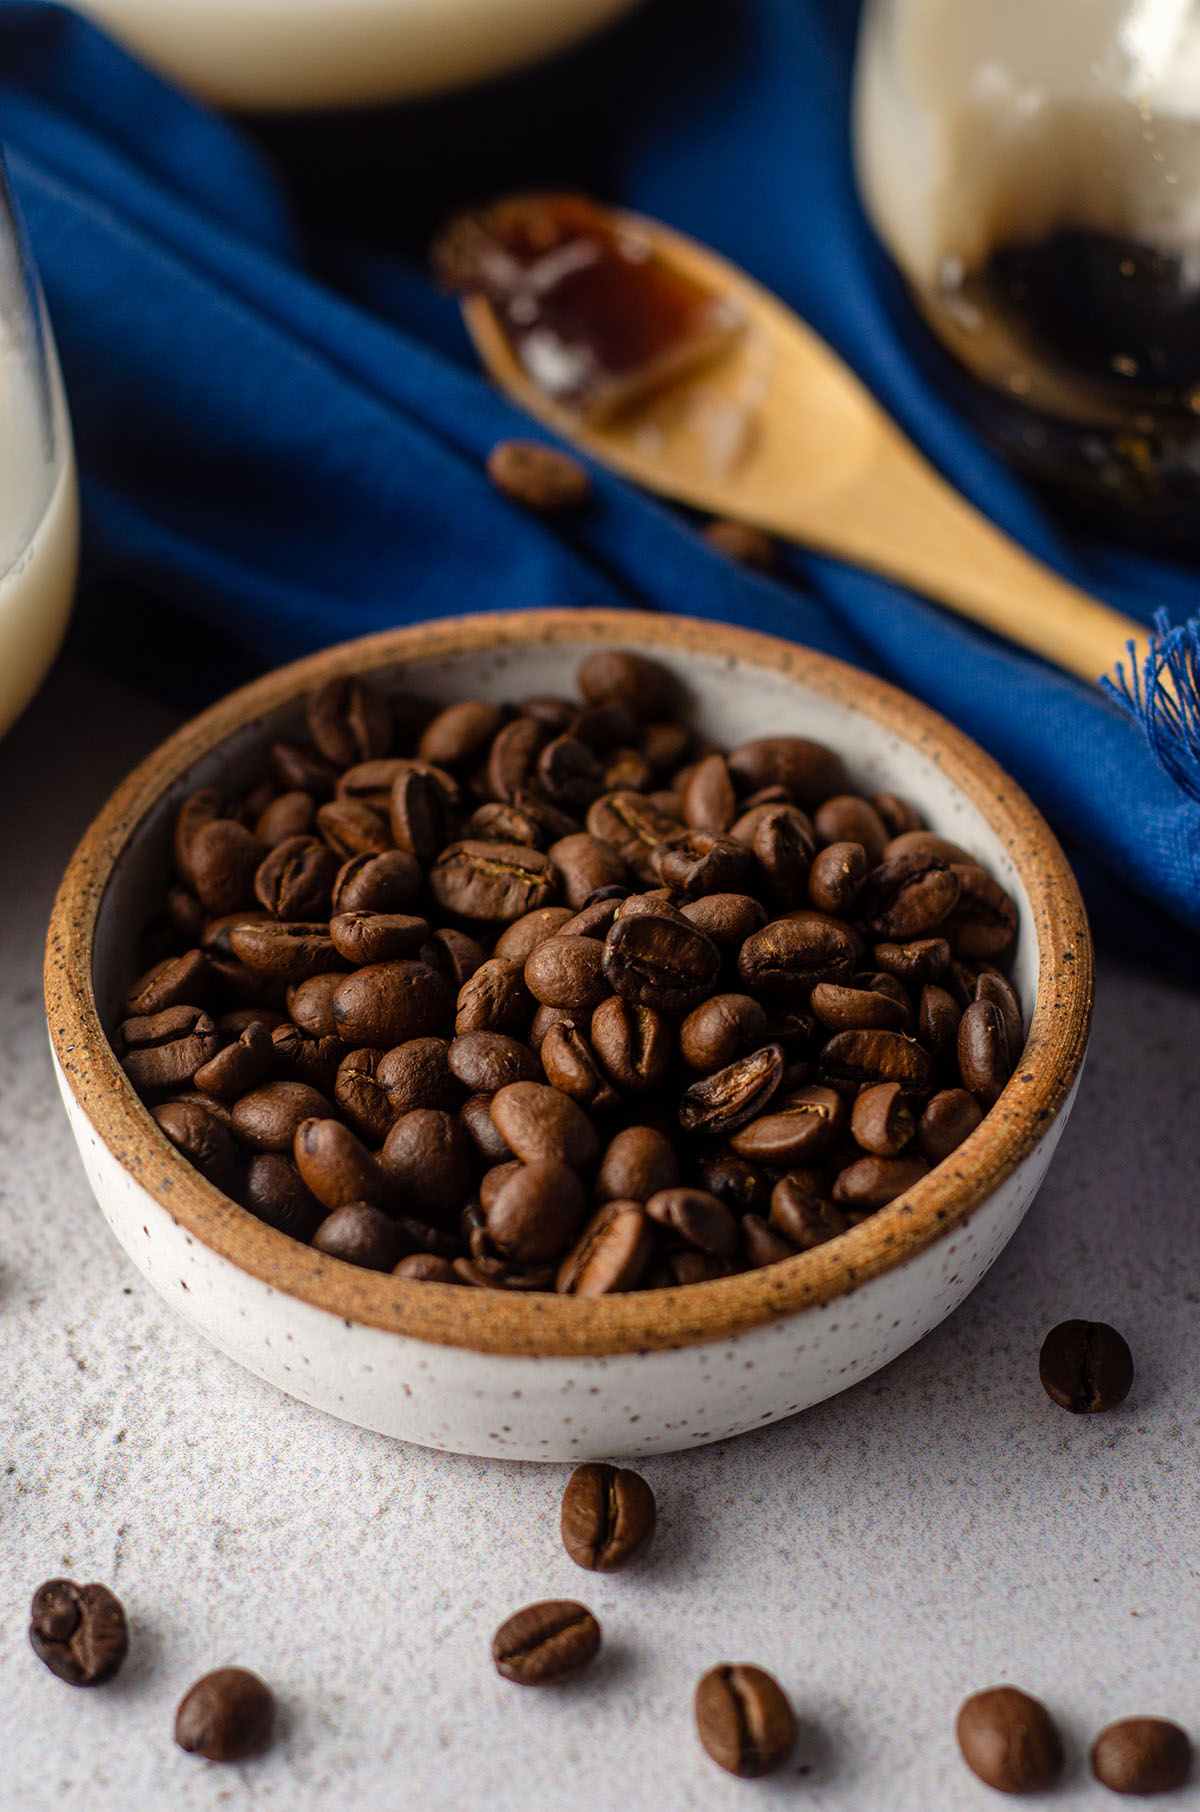 small pottery bowl of coffee beans